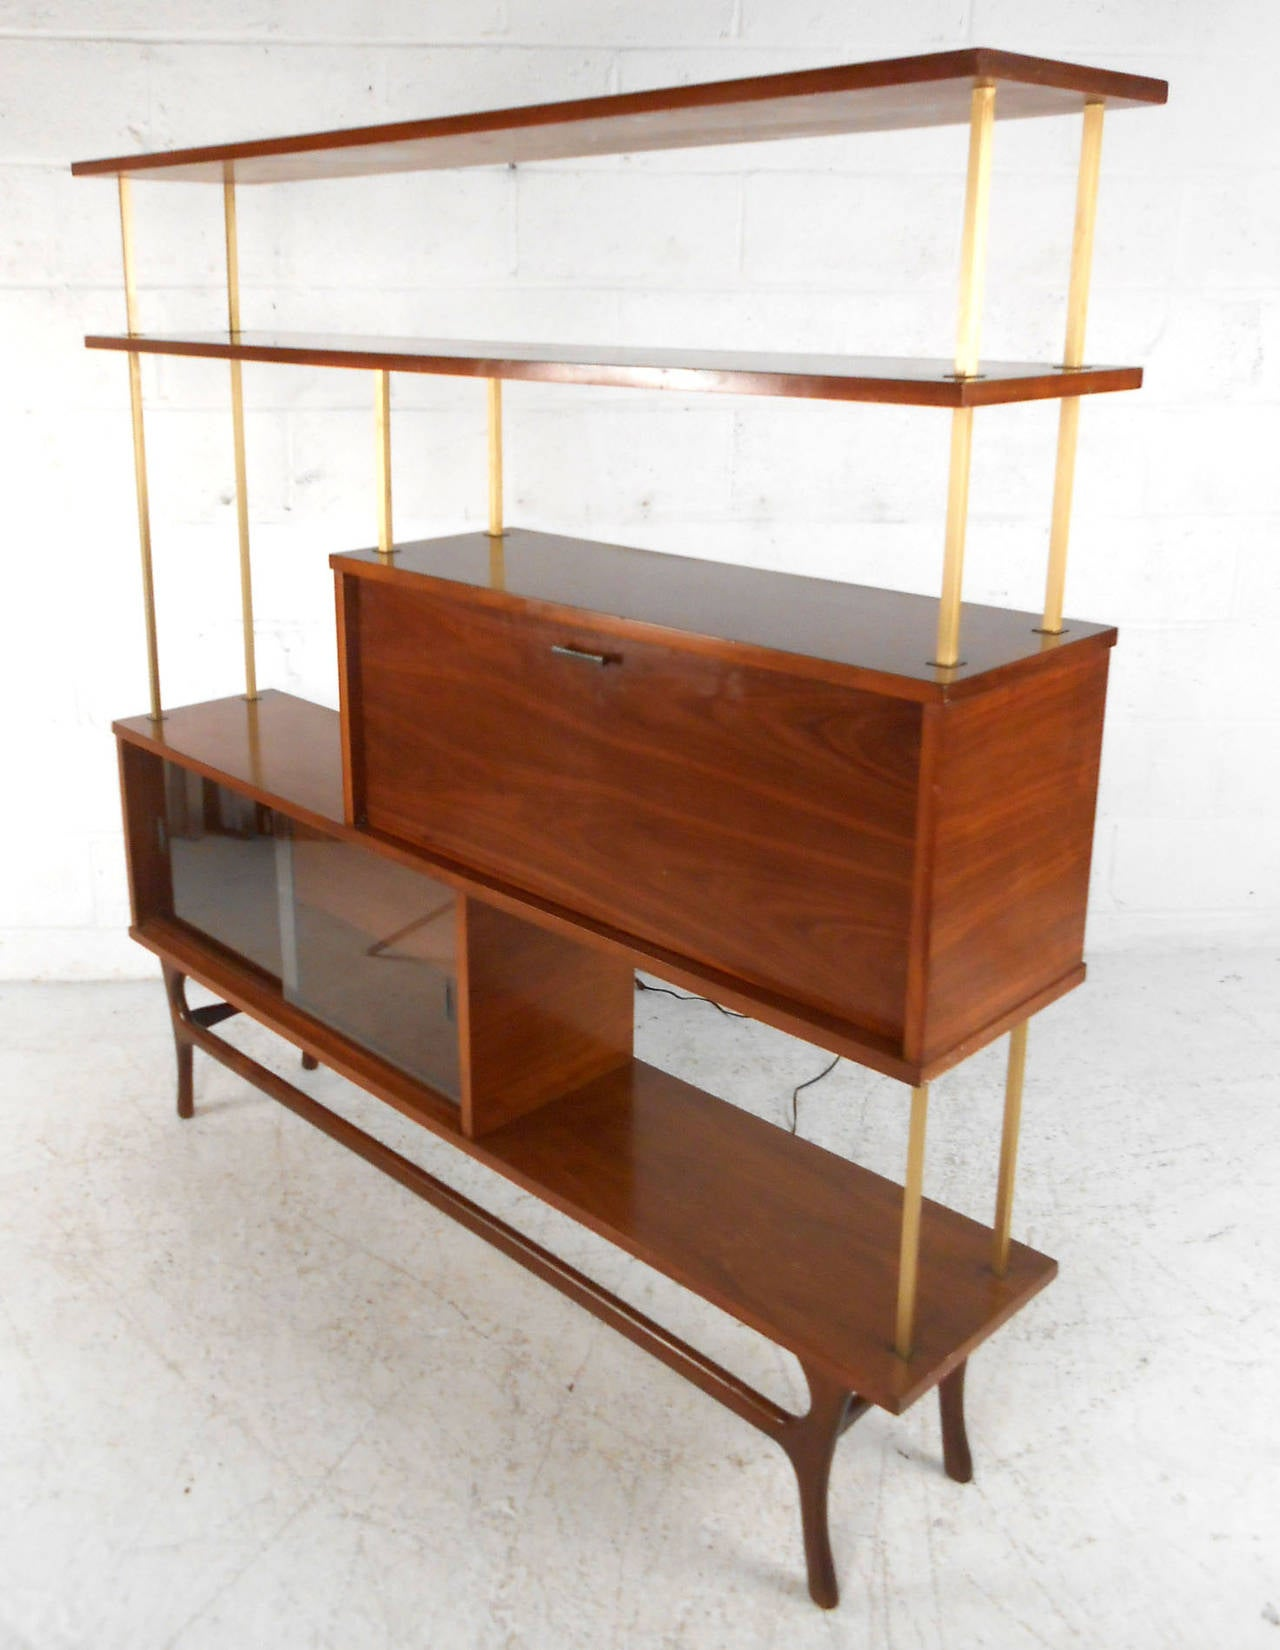 This Beautiful Vintage Display Features A Combination Of Open Shelf E Cabinet Storage And